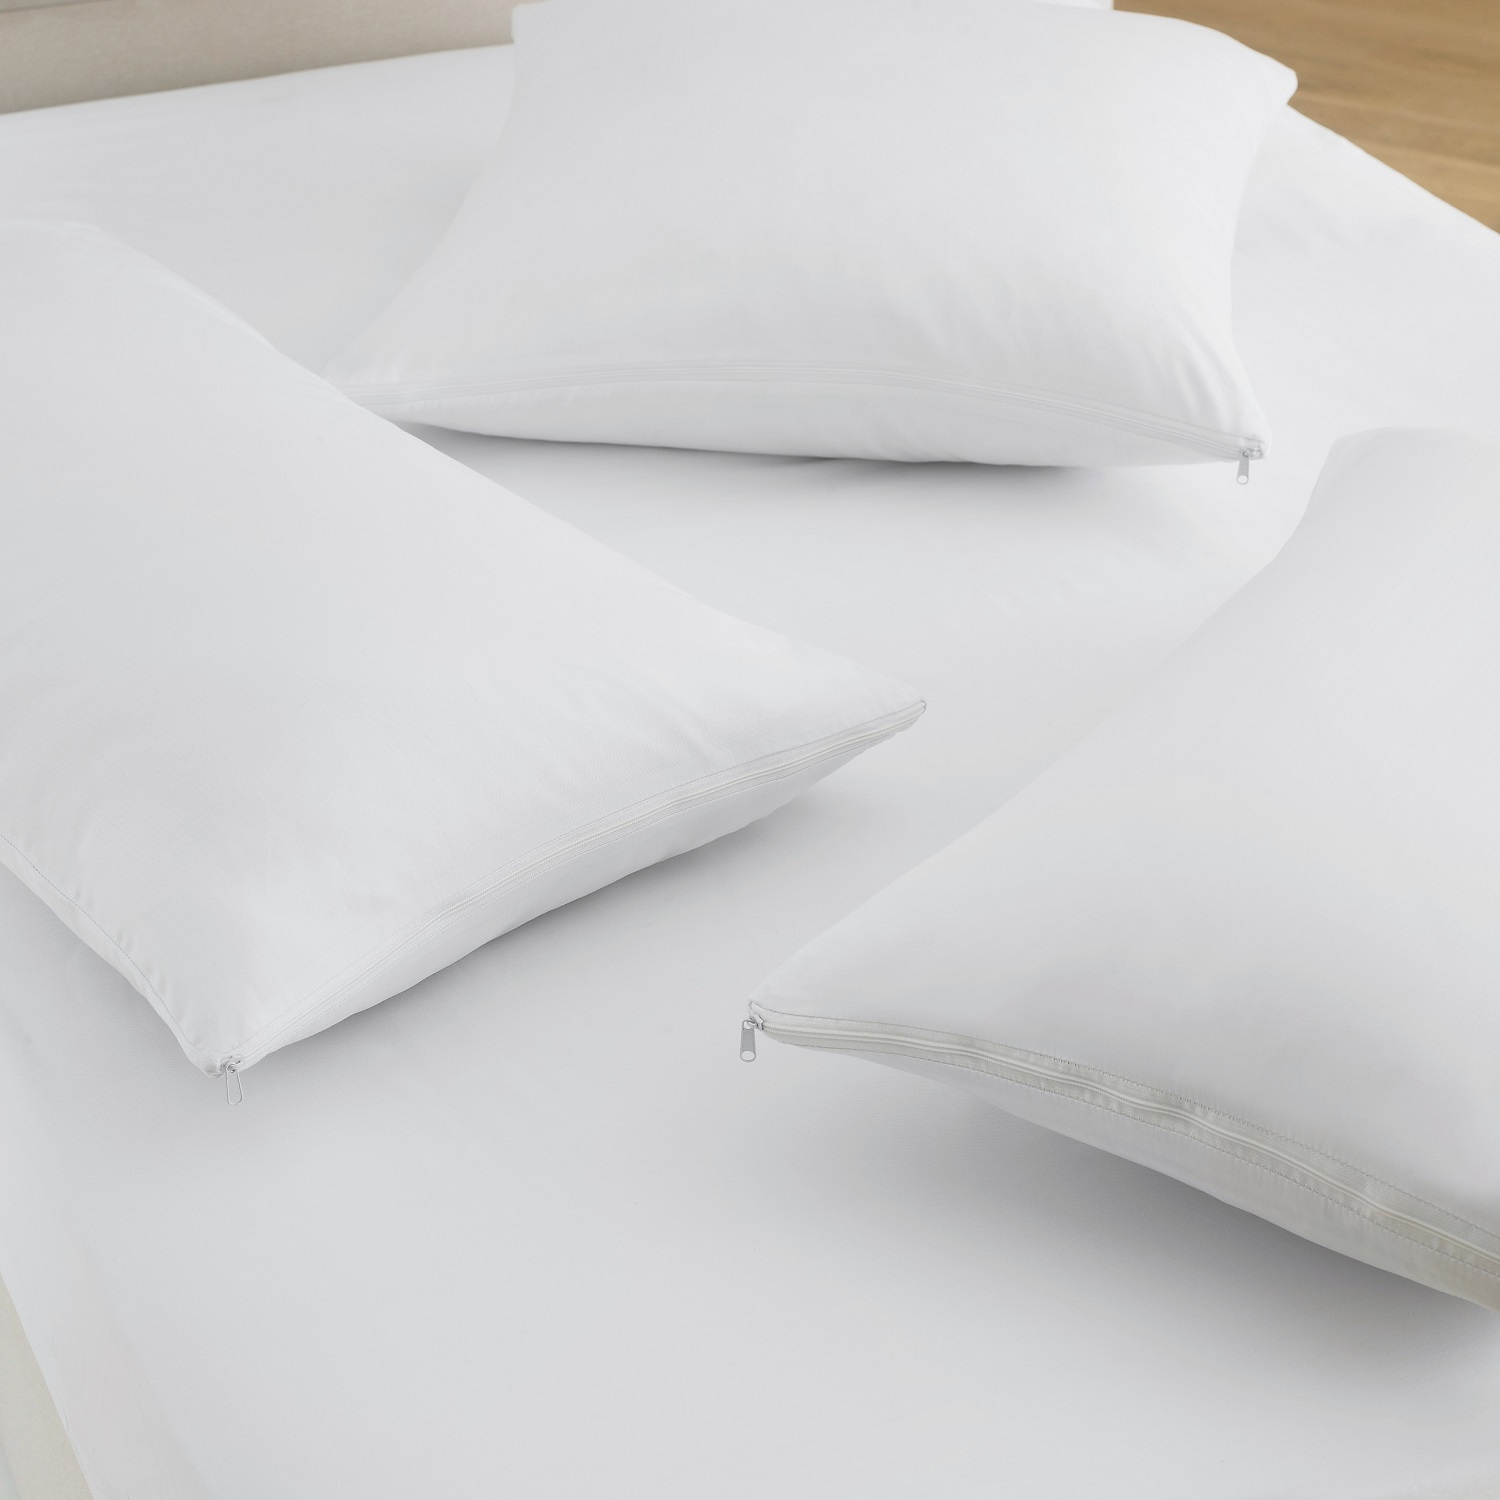 Tefflon_pillow_protectors-_1500.jpg